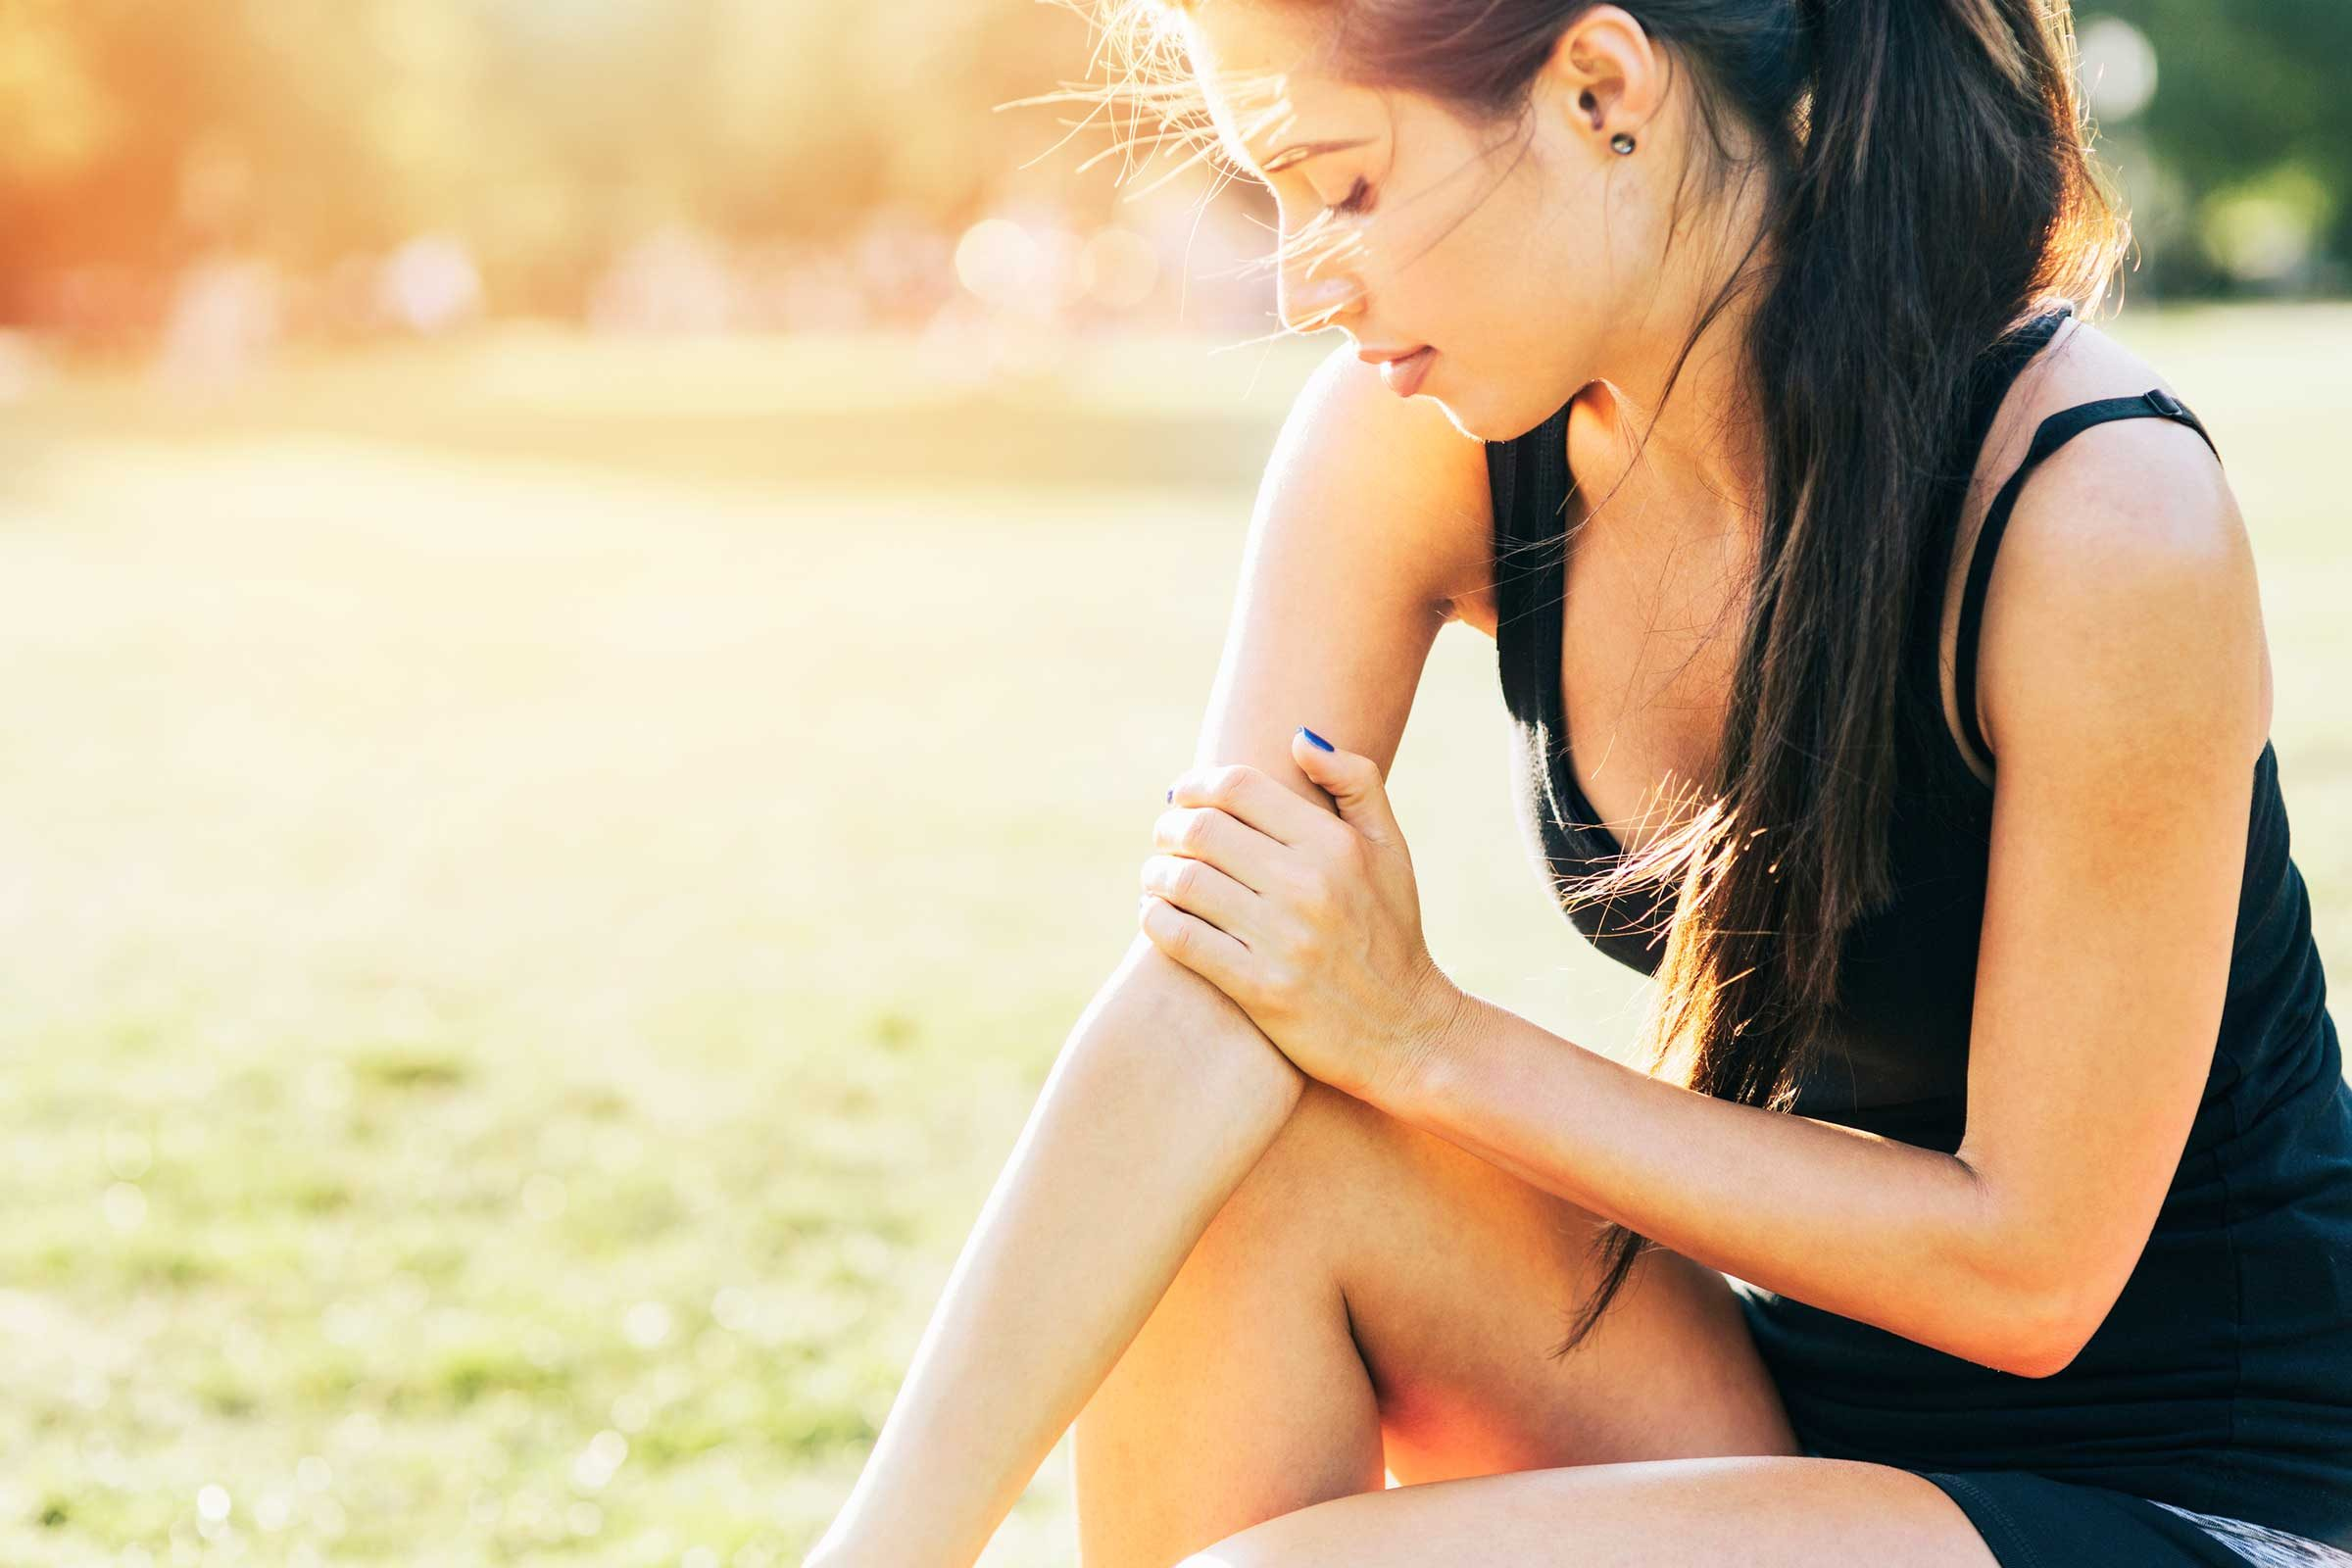 How Do You Treat The Symptoms Of Chronic Muscle Pain One Year After Injury